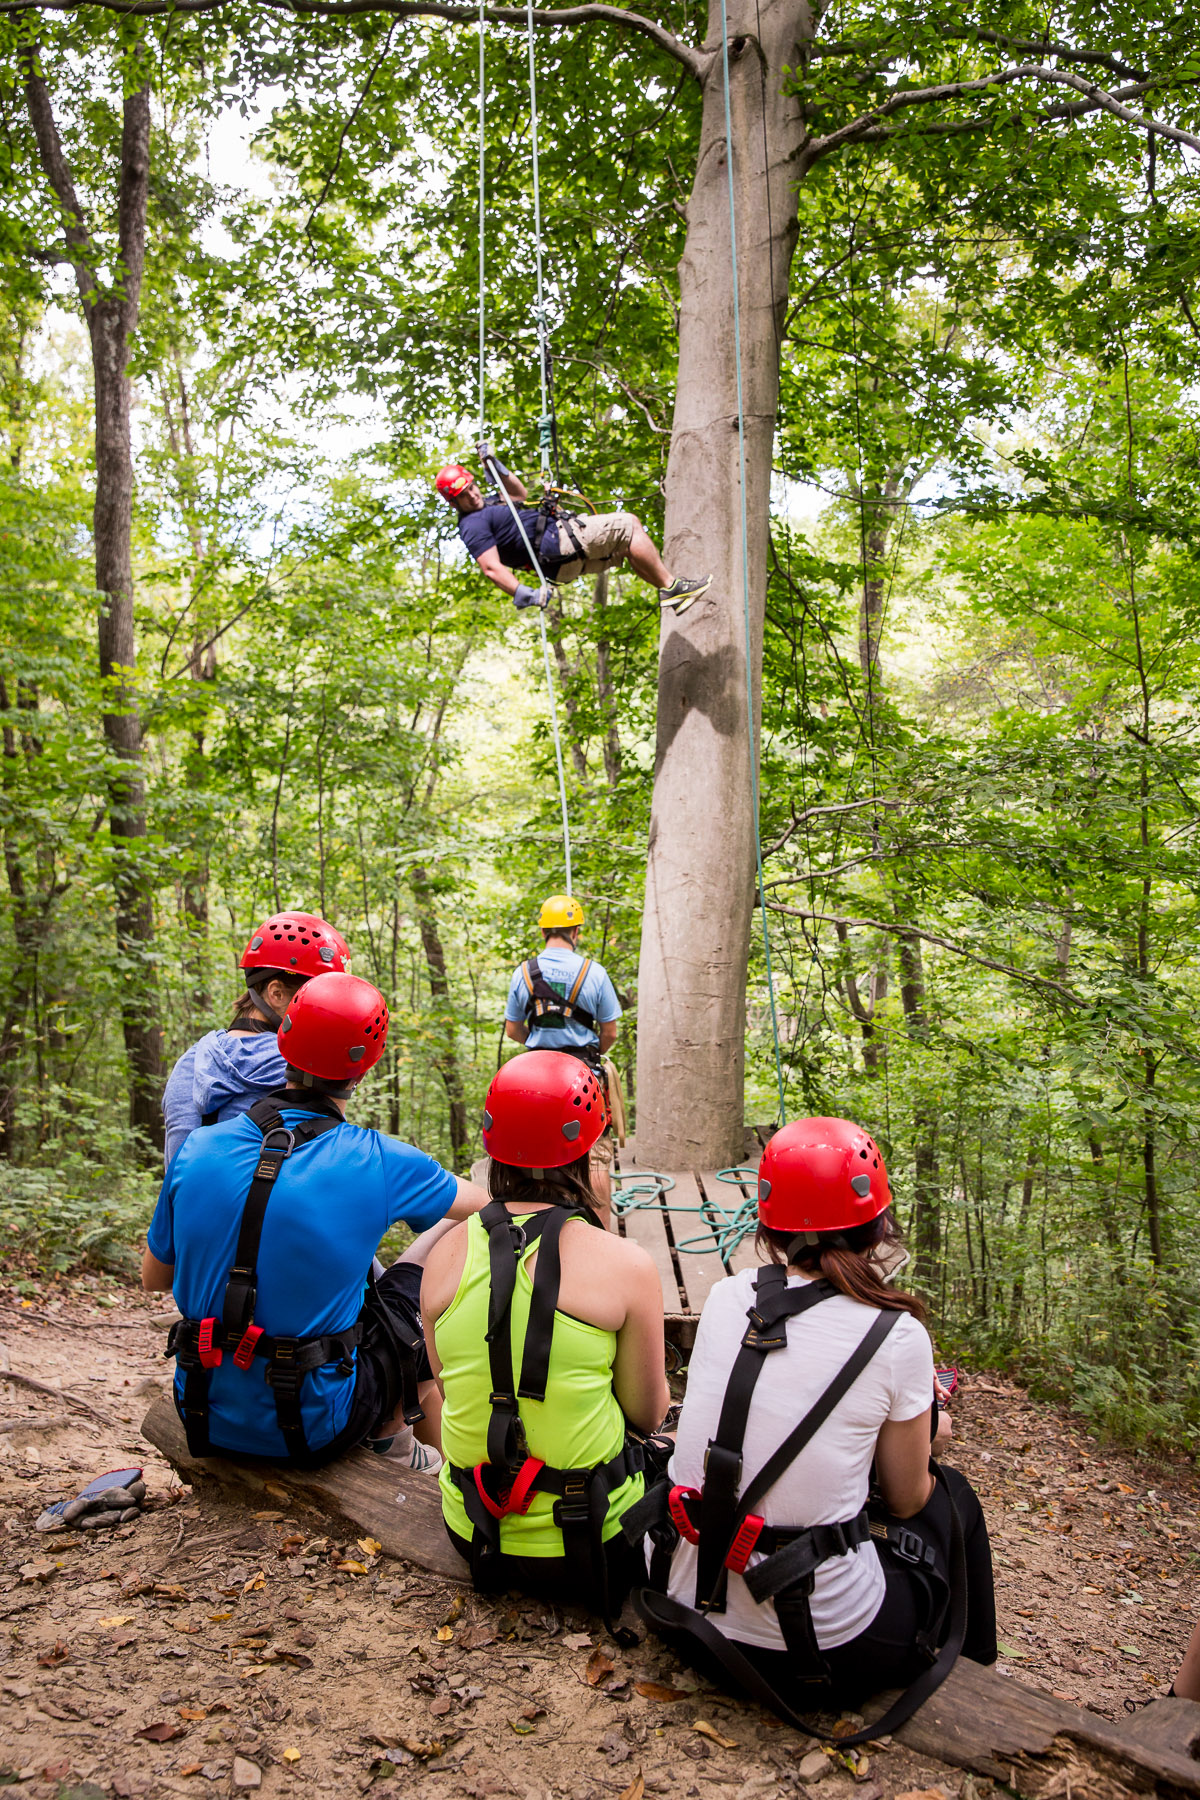 Tree Frog Canopy Zip Line Tours & New to Ziplining? - Tree Frog Canopy Tours